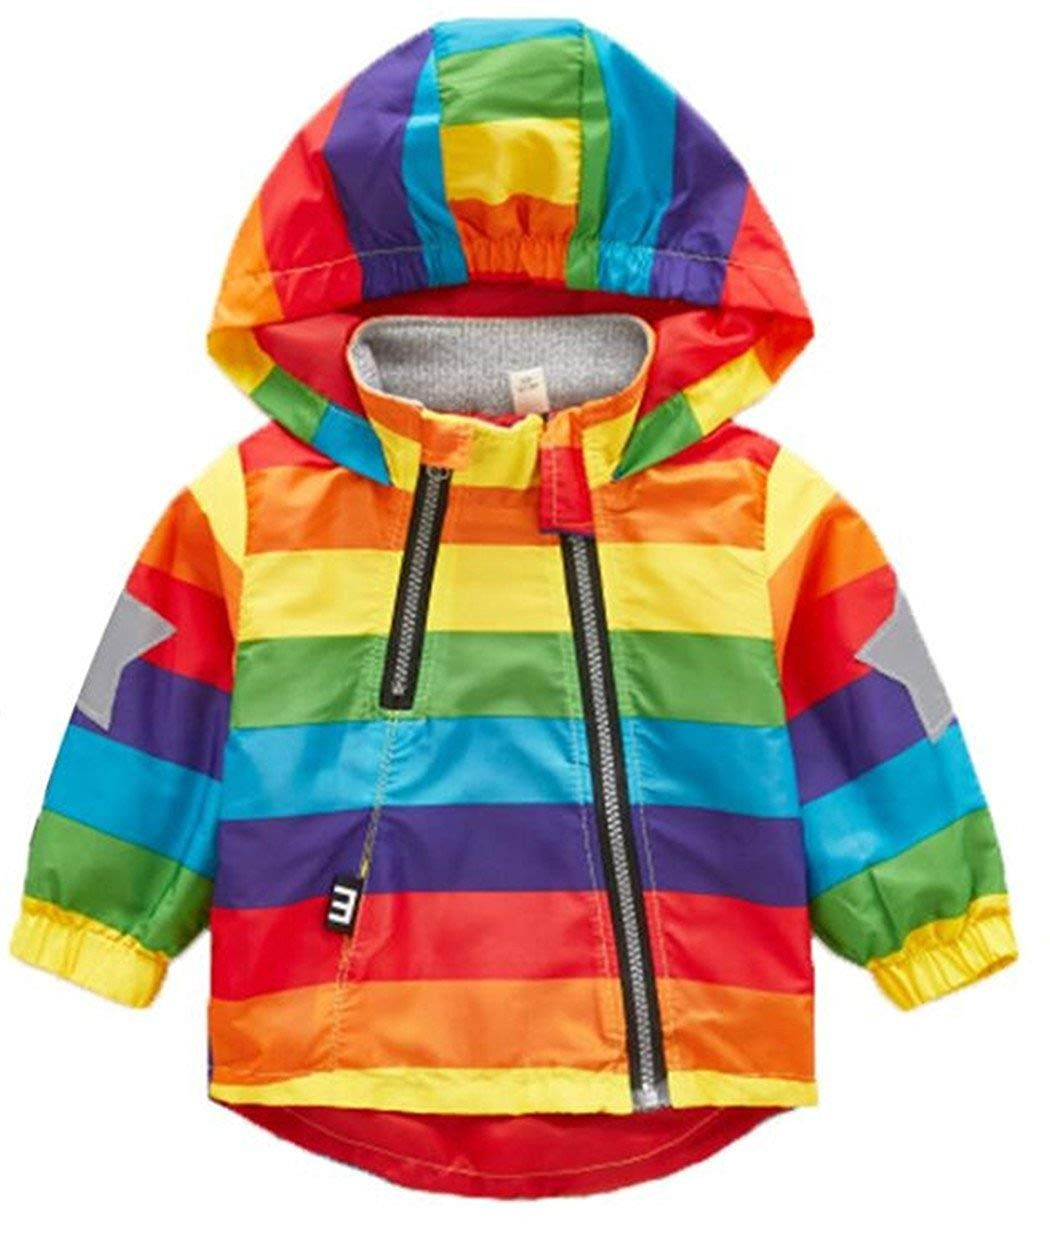 Toddler Boys Girls Rainbow Striped Outerwear Hooded Zipper Windproof Jacket Colour Cp18ed7qnzd Kids Winter Coats Girls Jacket Outerwear Jackets [ 1245 x 1050 Pixel ]